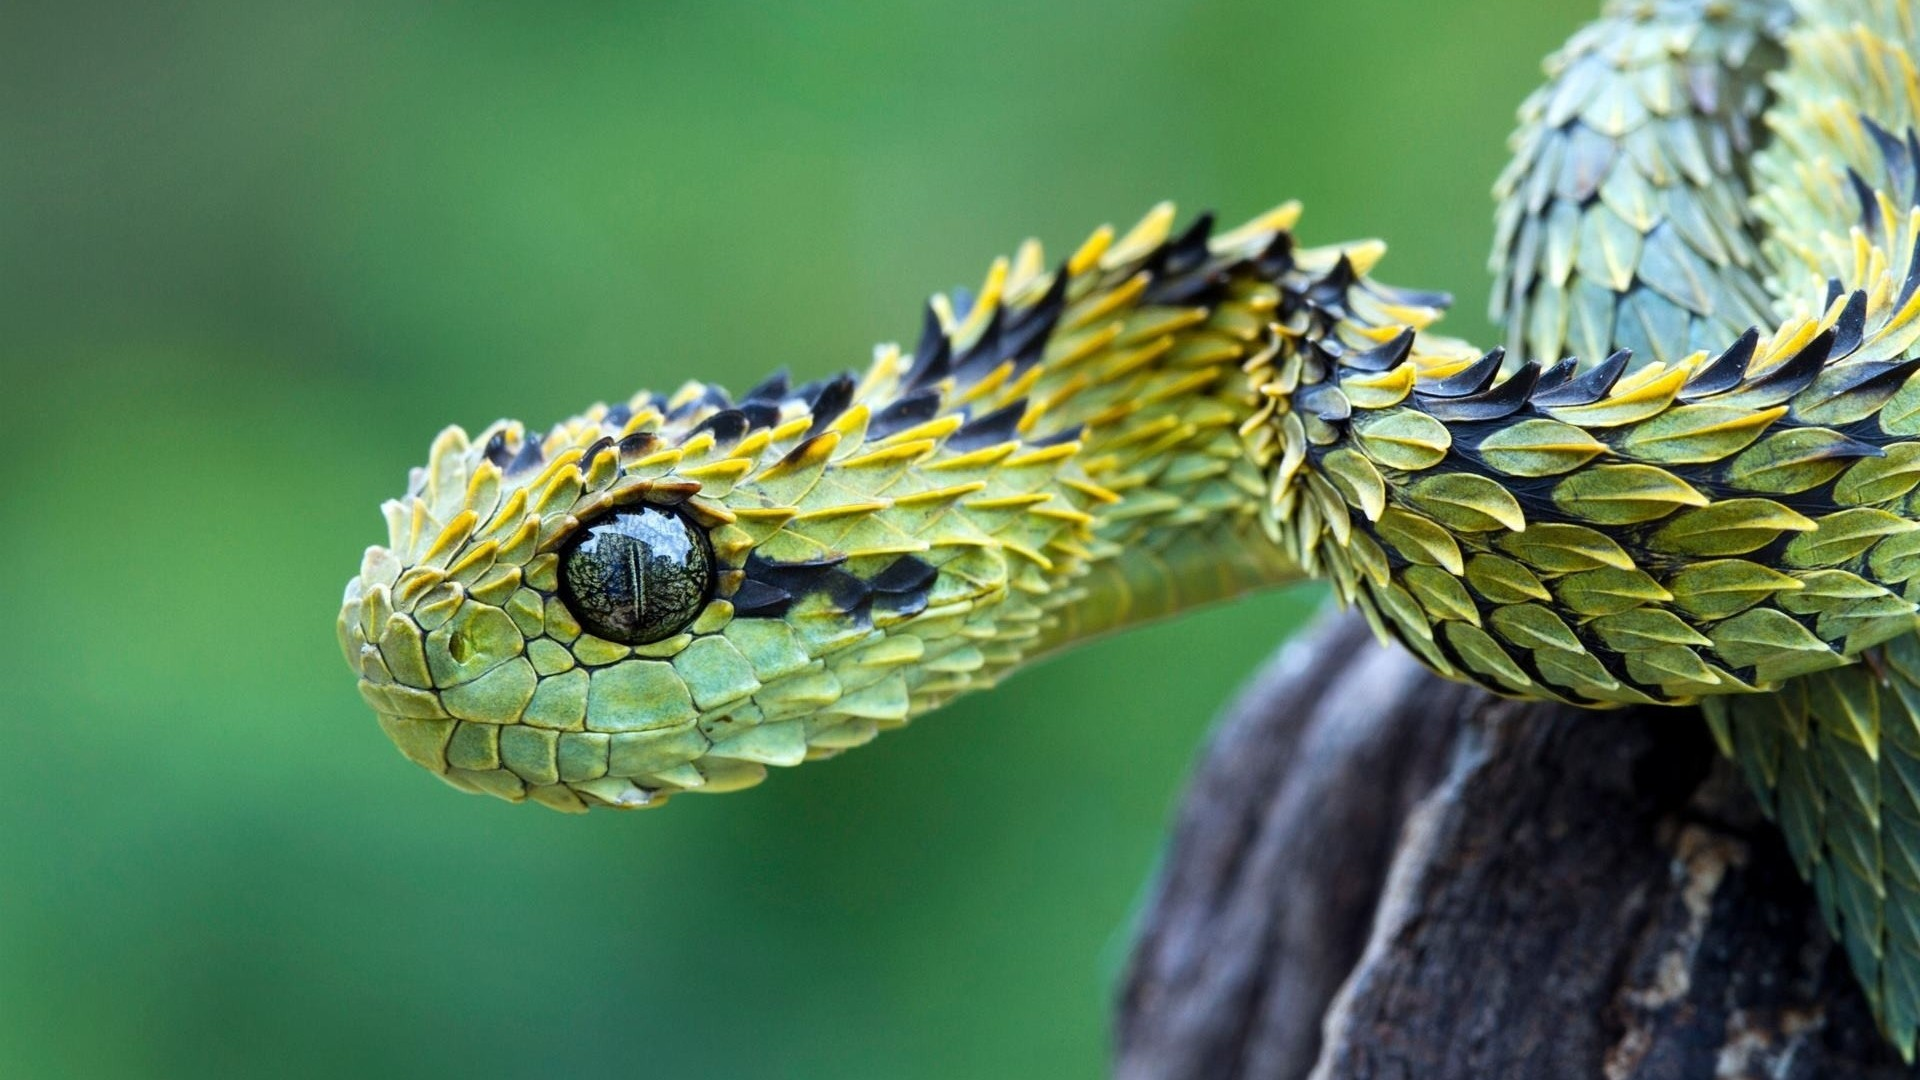 1920x1080 Full HD 1080p Snake Wallpapers HD, Desktop Backgrounds